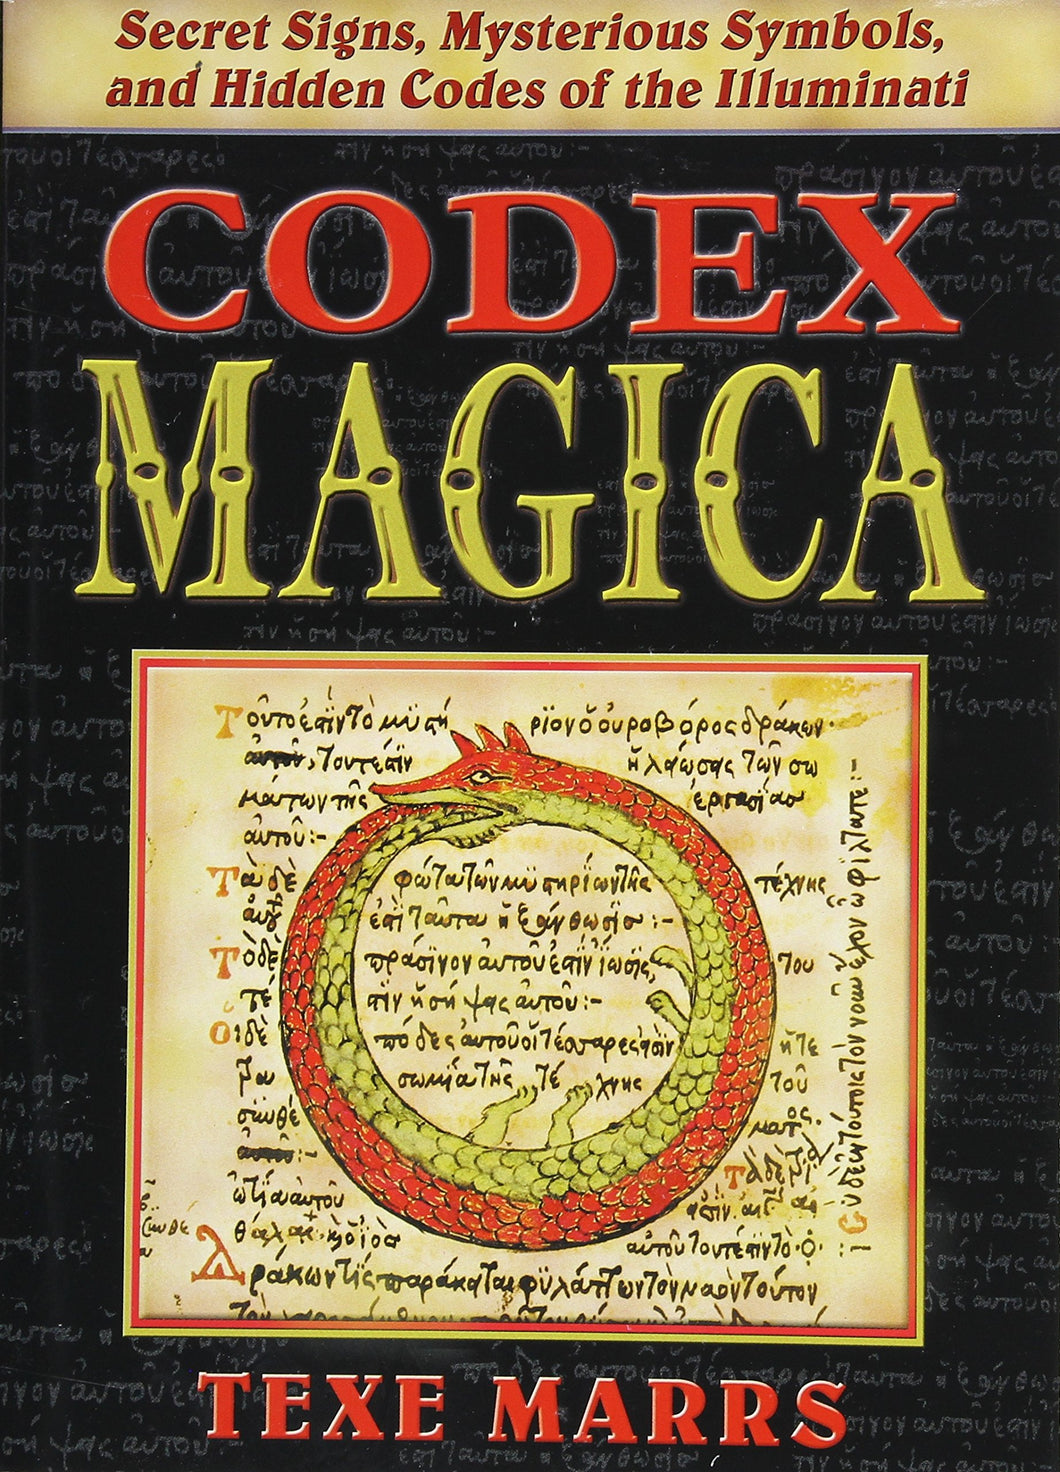 Codex Magica: Secret Signs, Mysterious Symbols, and Hidden Codes of the Illuminati by Texe Marrs